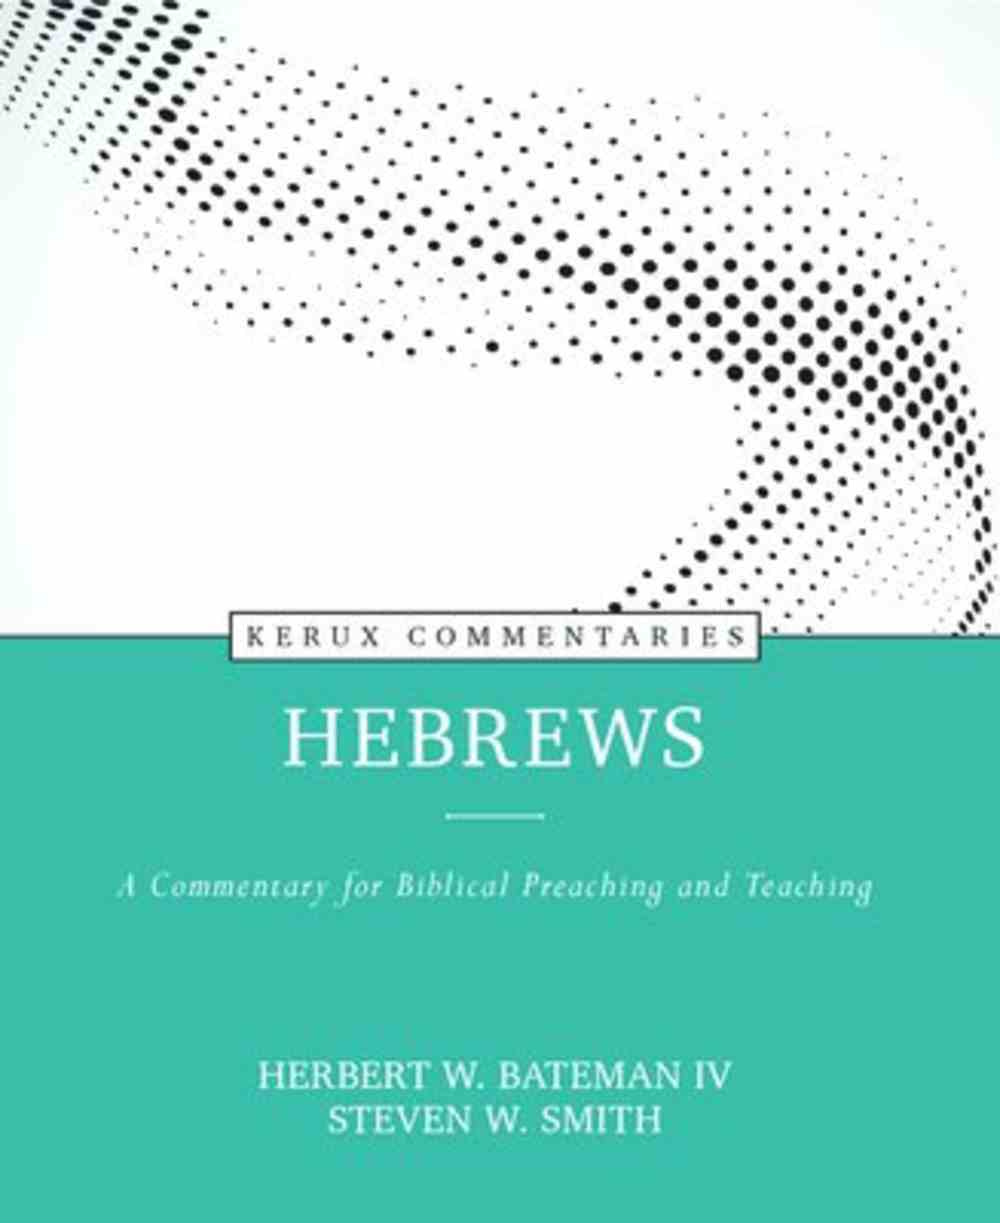 Hebrews - a Commentary For Biblical Preaching and Teaching (Kerux Commentary Series) Hardback